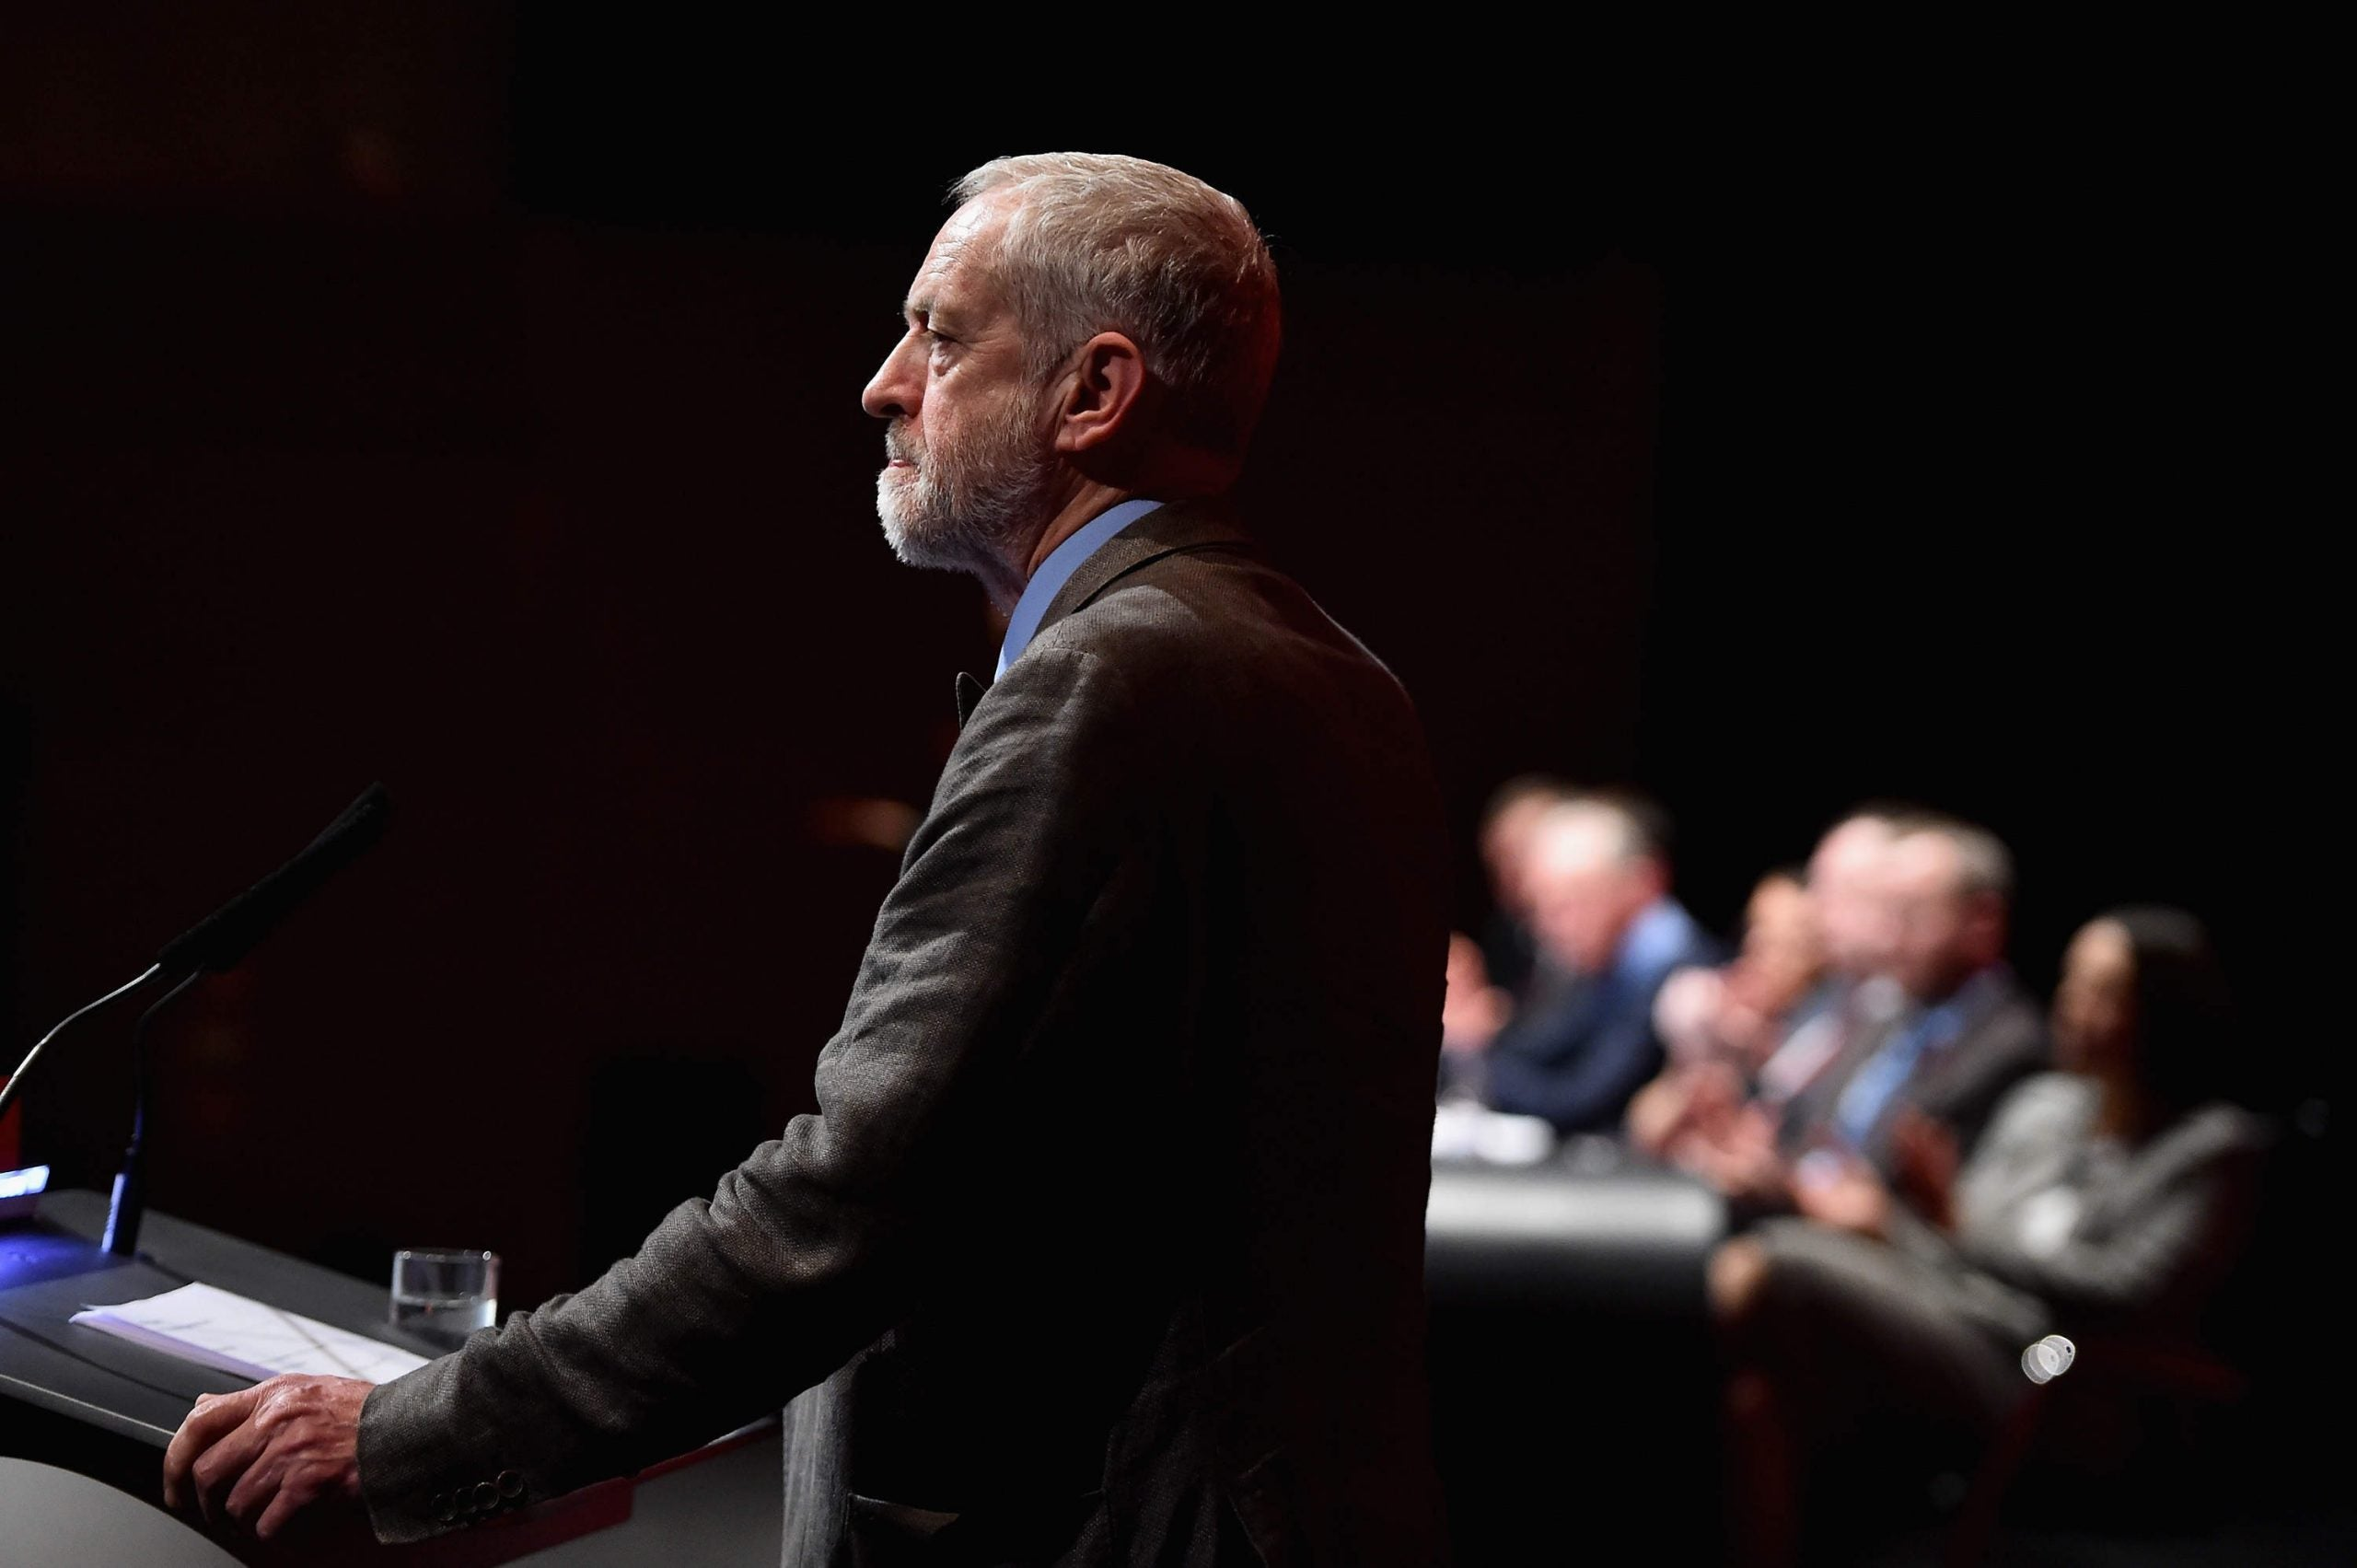 Forget the books. Jeremy Corbyn is without historical precedent